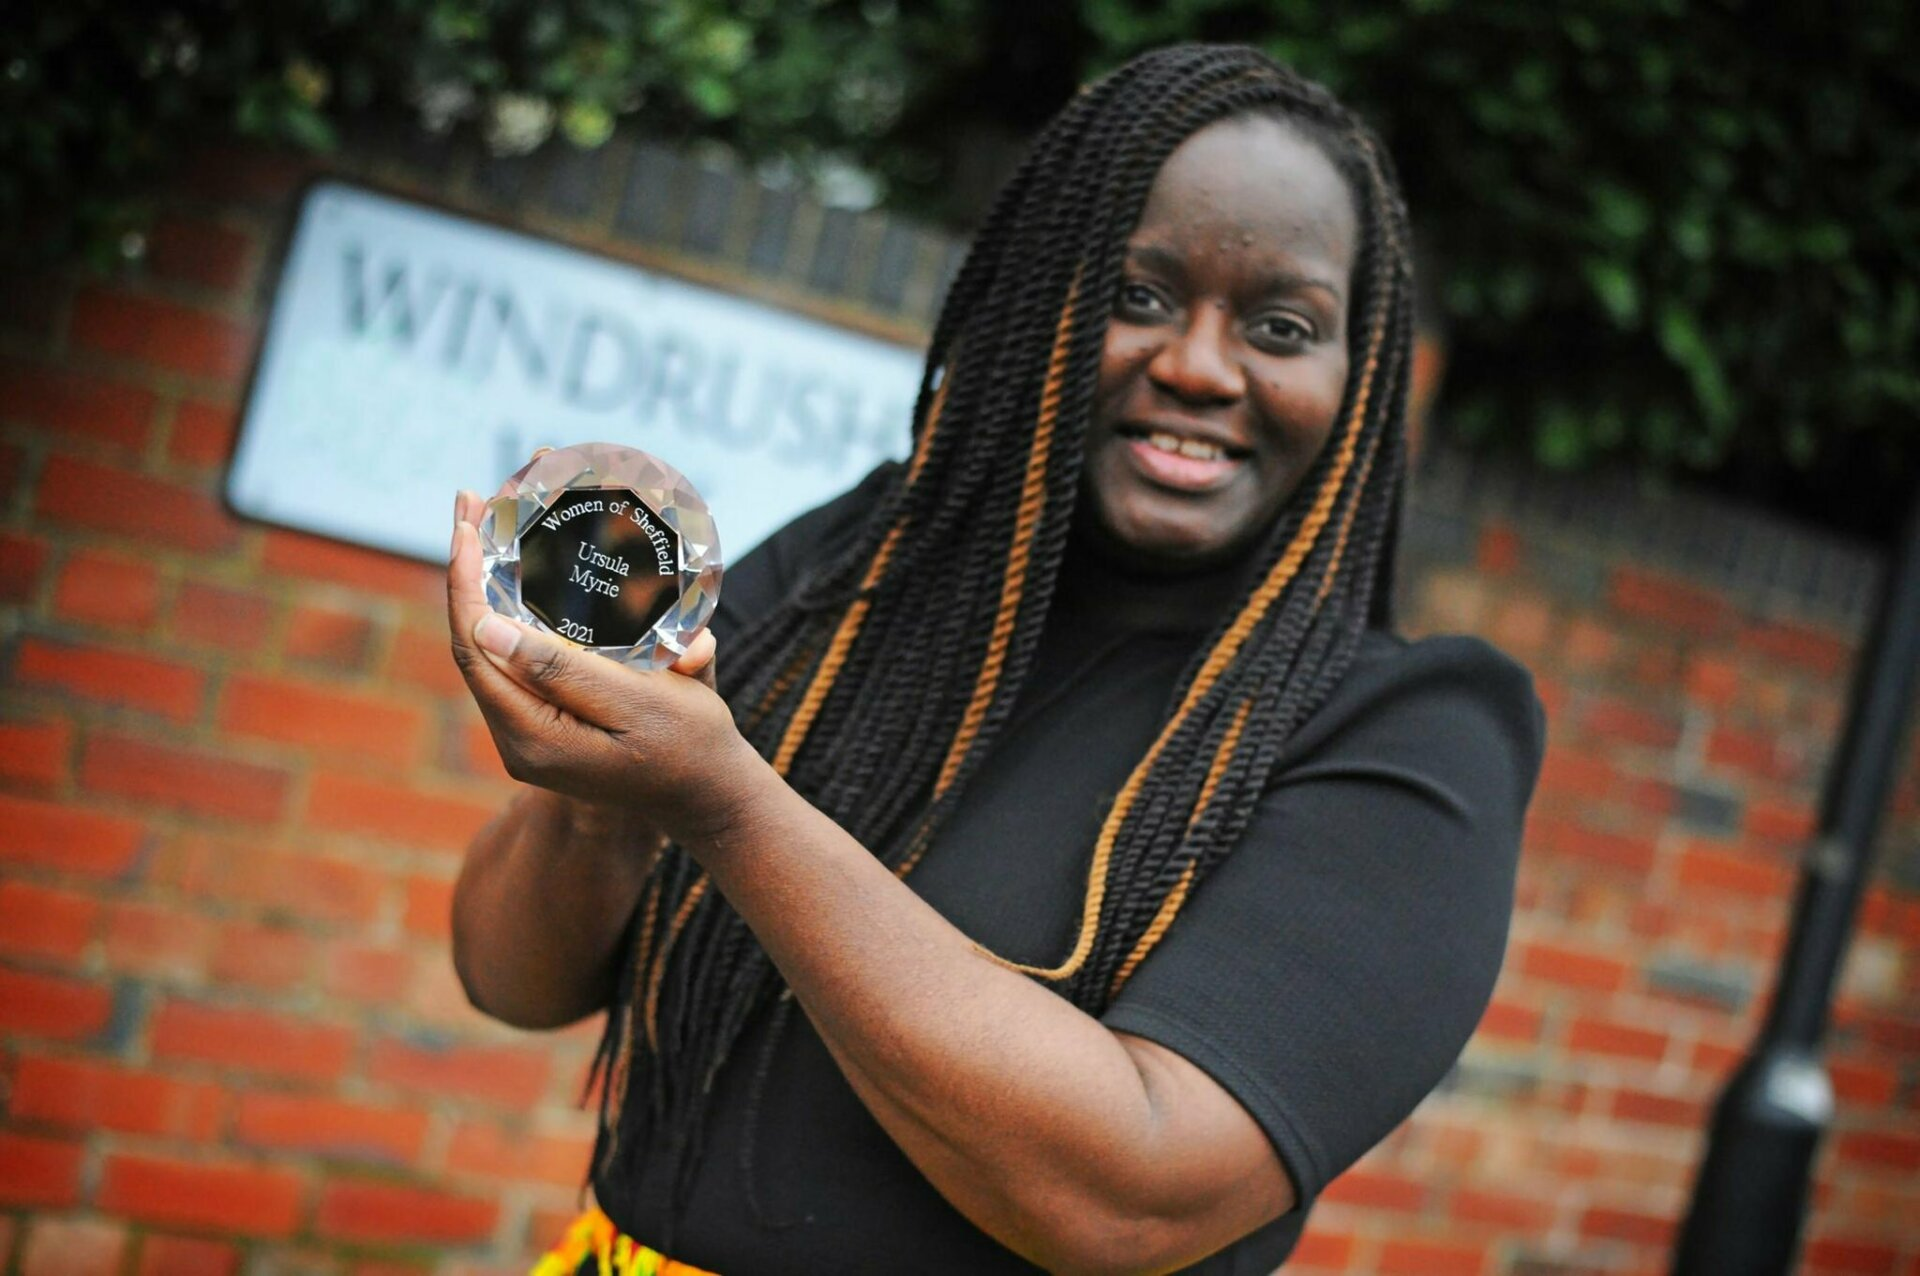 Ursula Myrie with the Barbara Wragg Award for Charity for the Adira Food Pharmacy